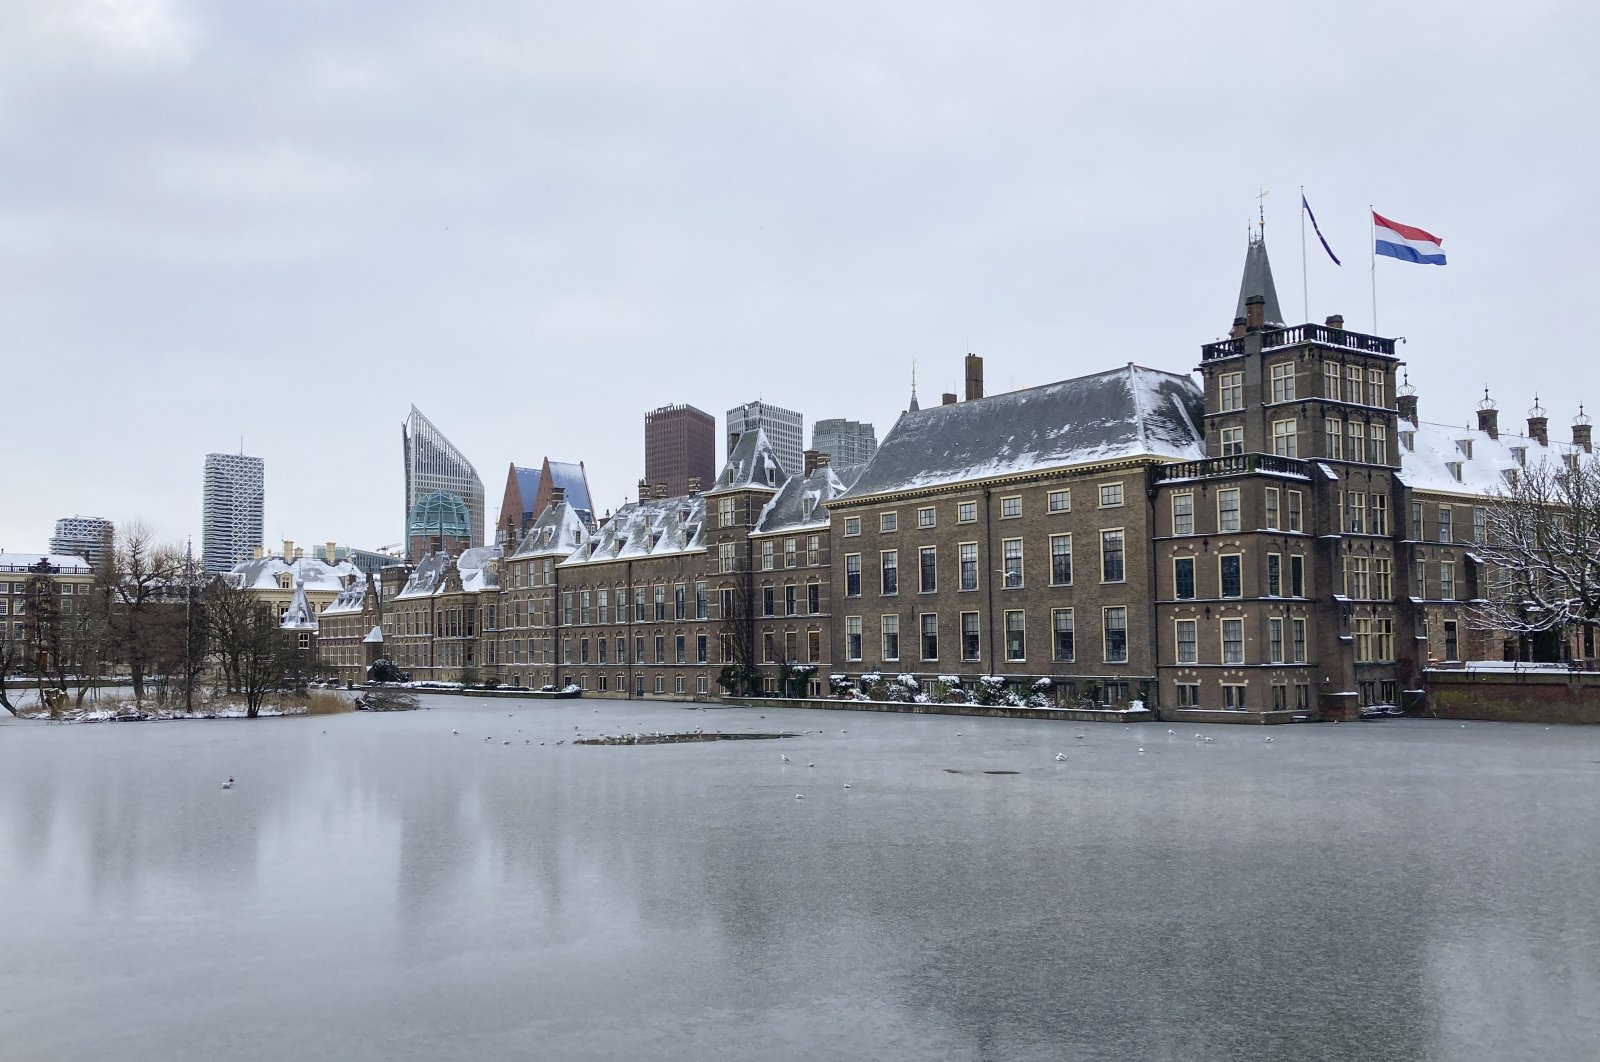 The frozen Hofvijver pond is seen outside the Dutch parliament buildings in The Hague, Netherlands, Tuesday, Feb. 9, 2021. (AP Photo)